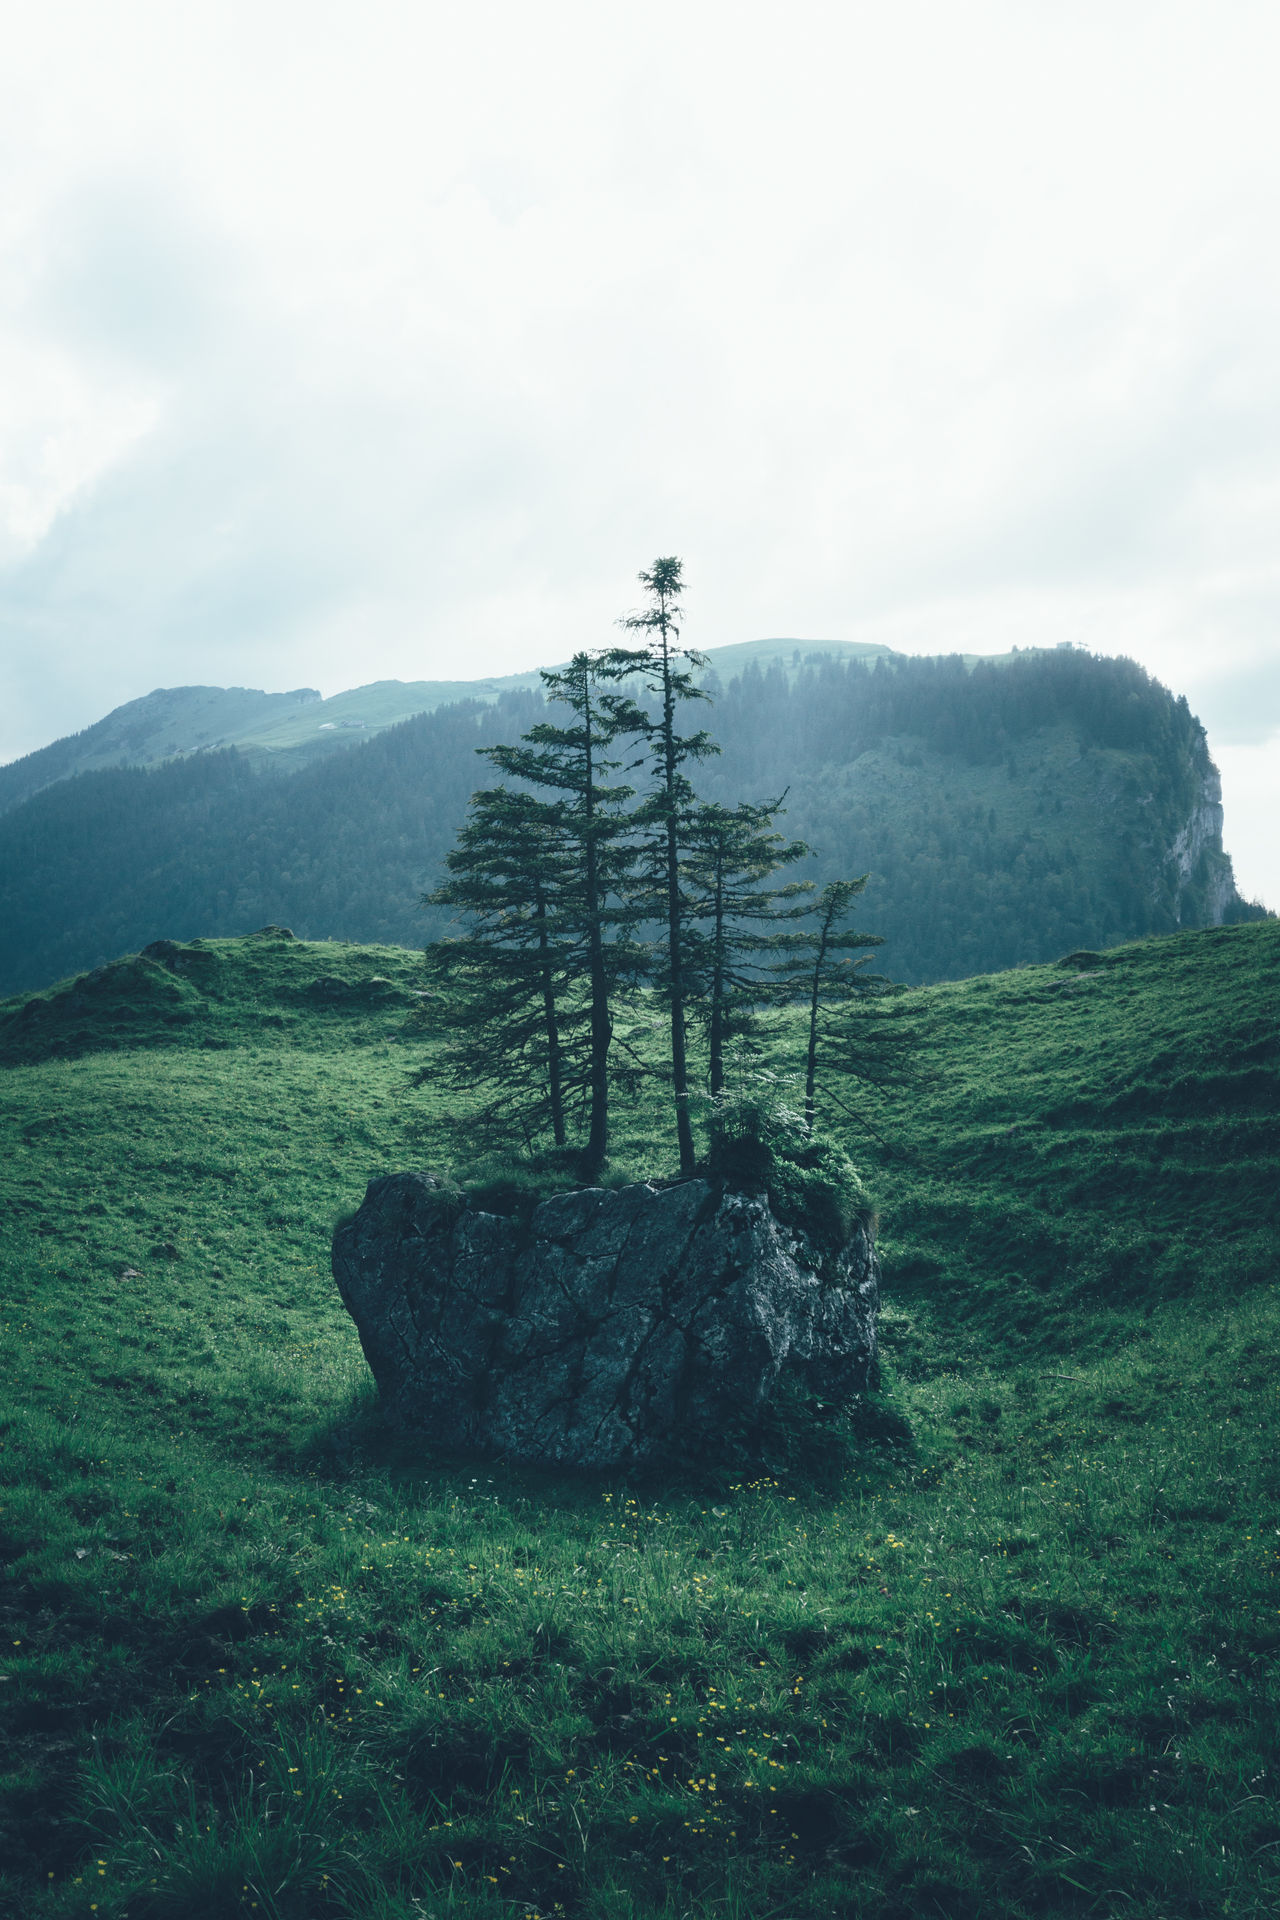 The tree of life, found in the Alpstein region in Appenzellerland, Switzerland Switzerland Swiss Swiss Alps Green Tree Magic Tree Tree Of Life Life Hipster Hipster Tree Schweiz Suisse  Green Landscape Film Photography Nature Nature Photography Plants Calm Calmness Peaceful Green Love Appenzell Alpstein Appenzellerland Natur Color Palette